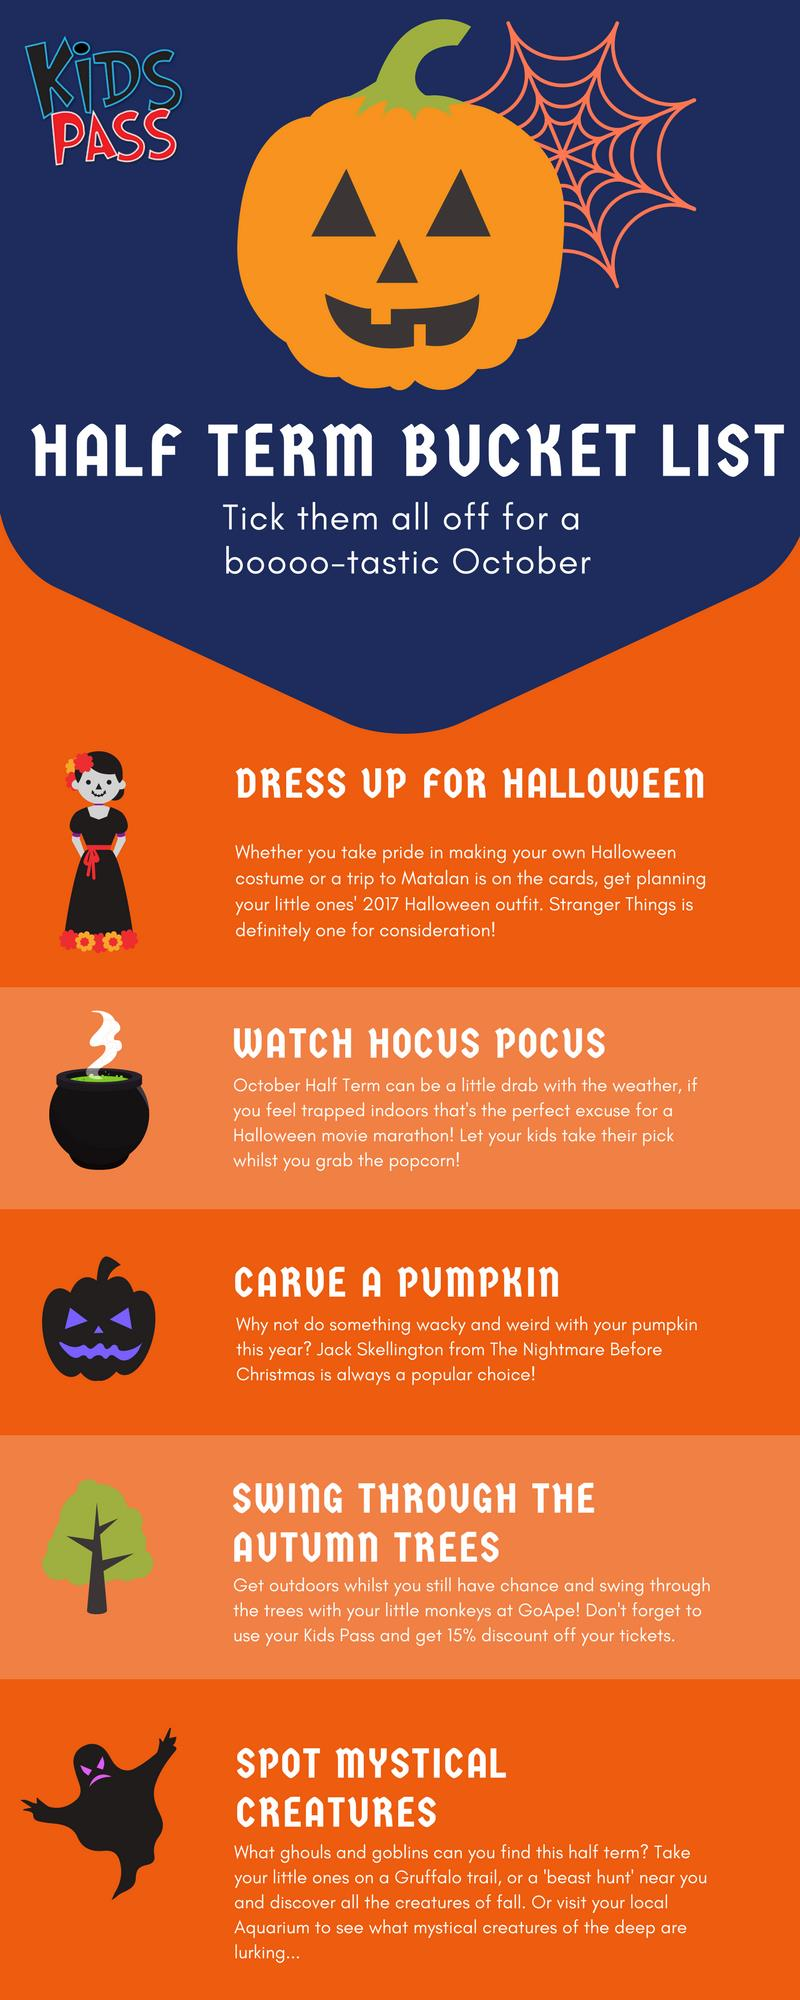 October Half Term Bucket List